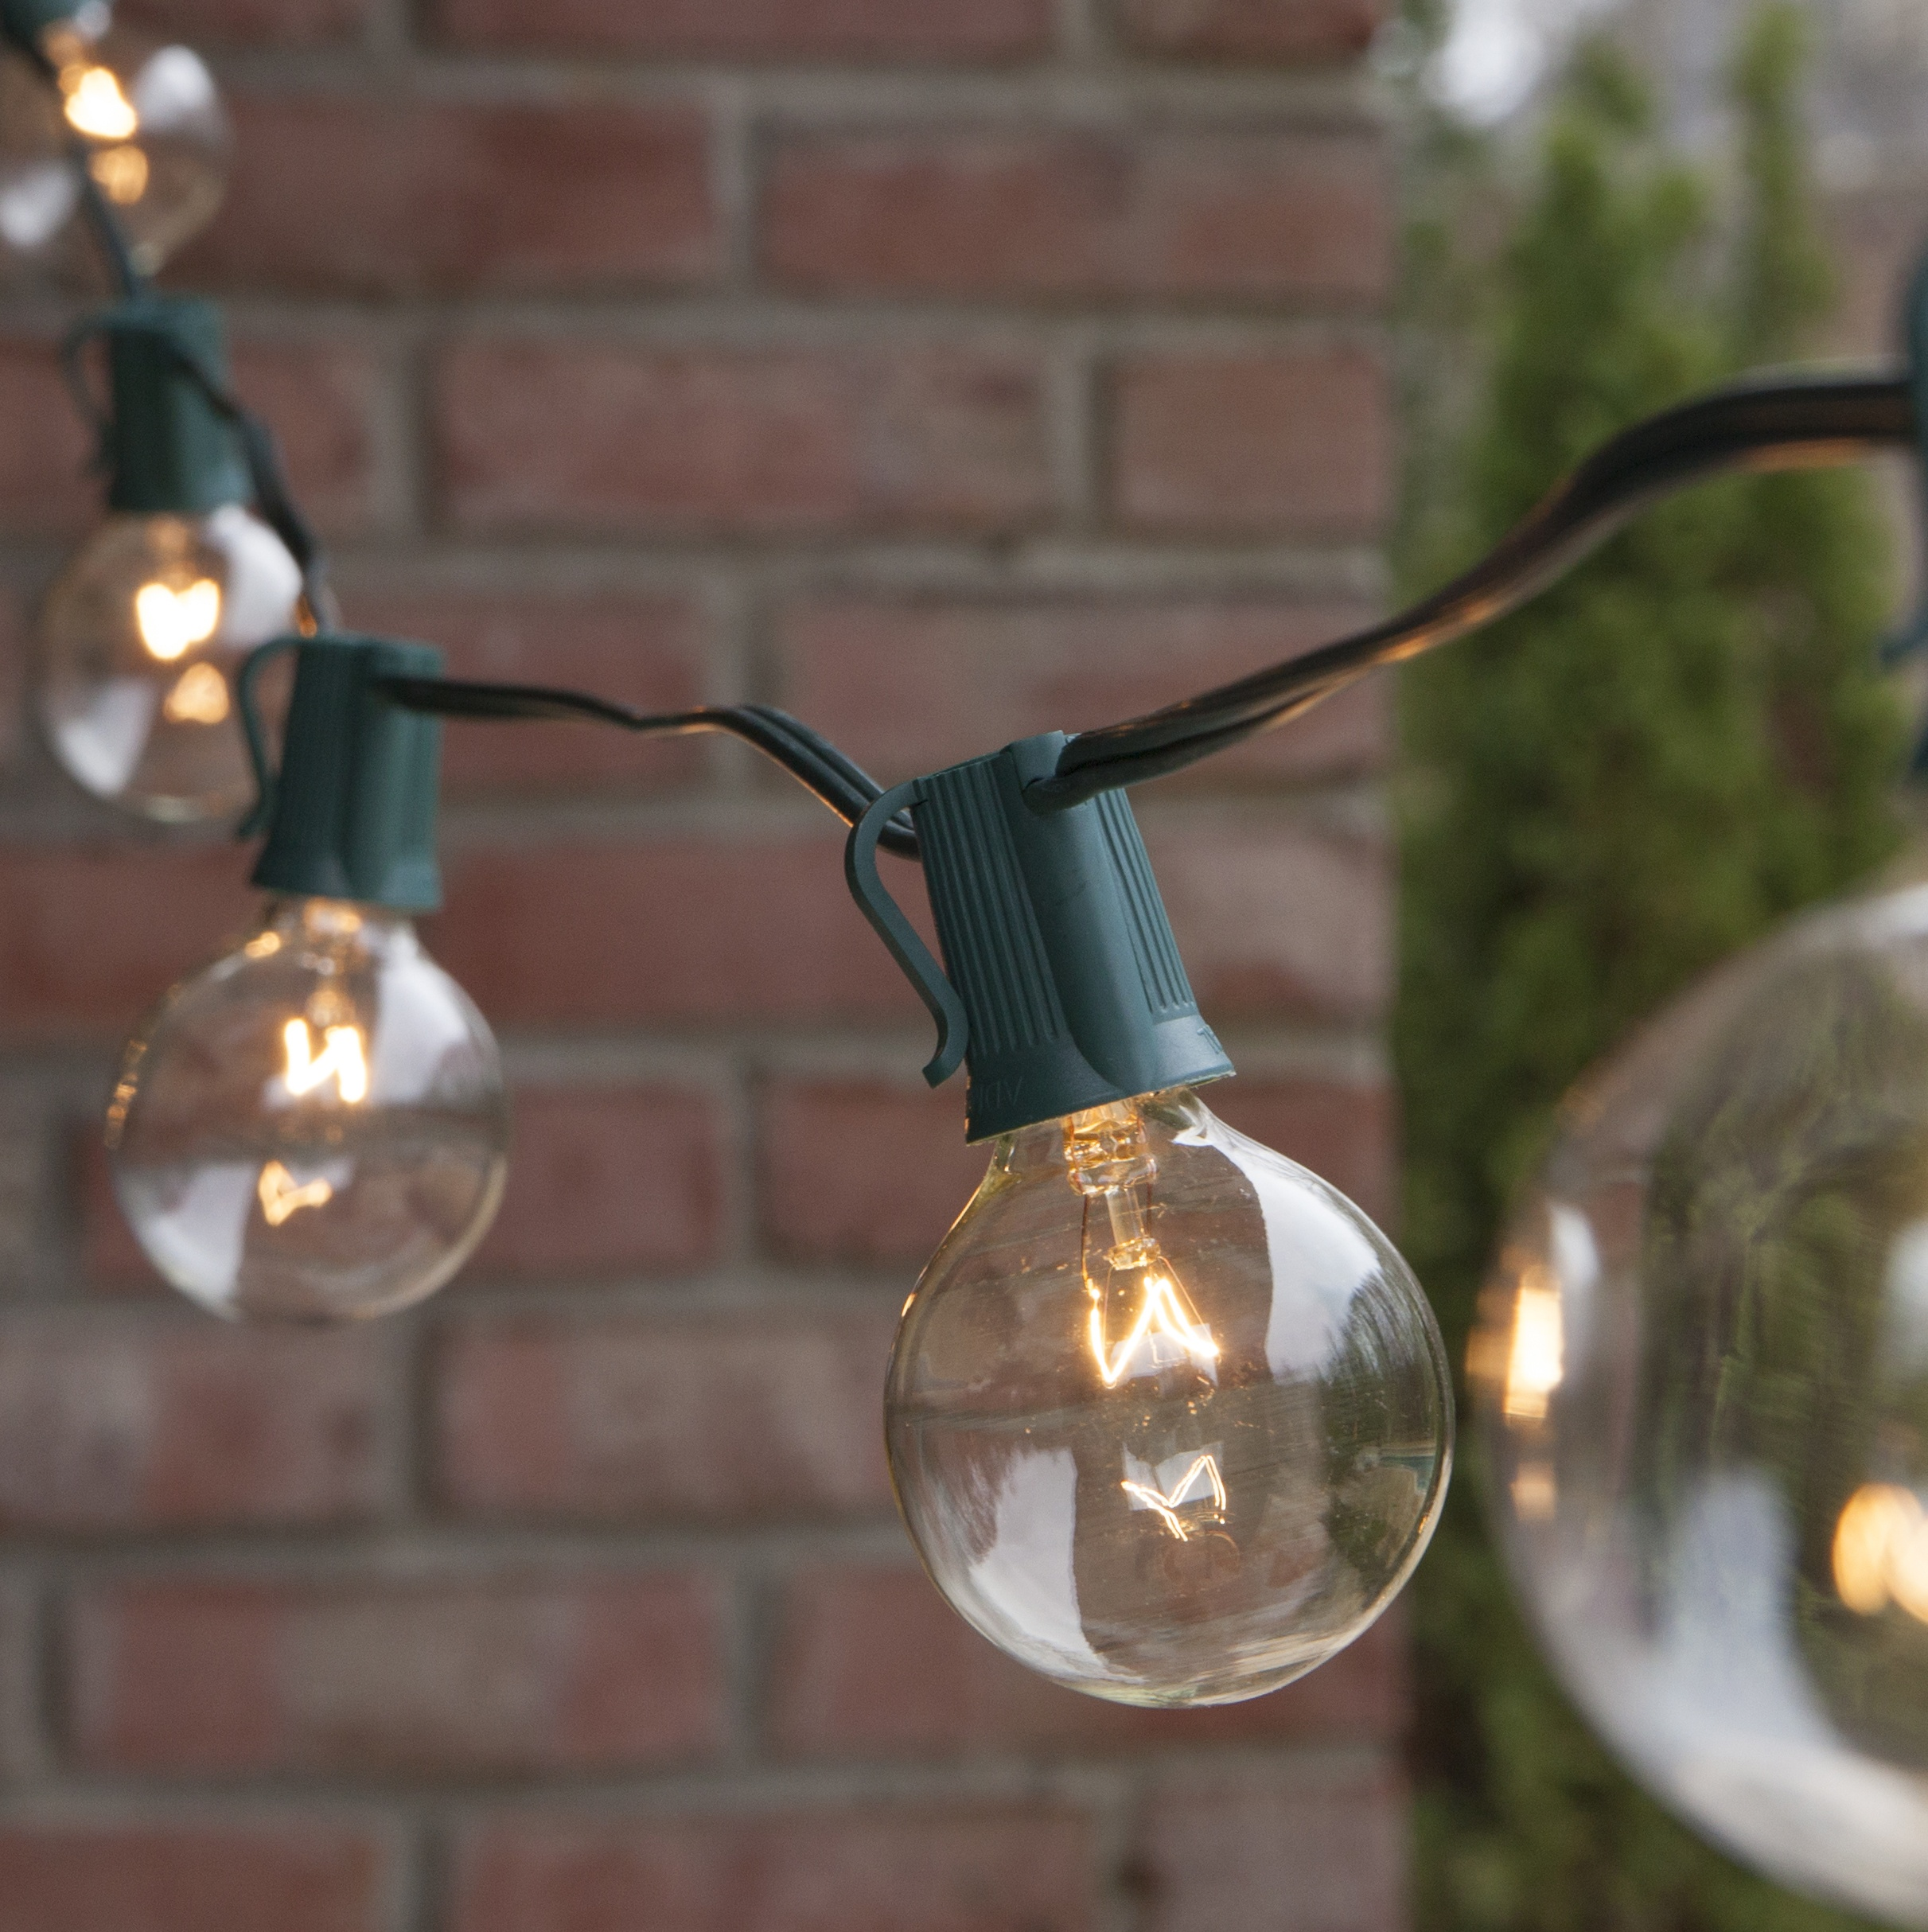 Patio lights commercial clear globe string lights 25 Outdoor string lighting